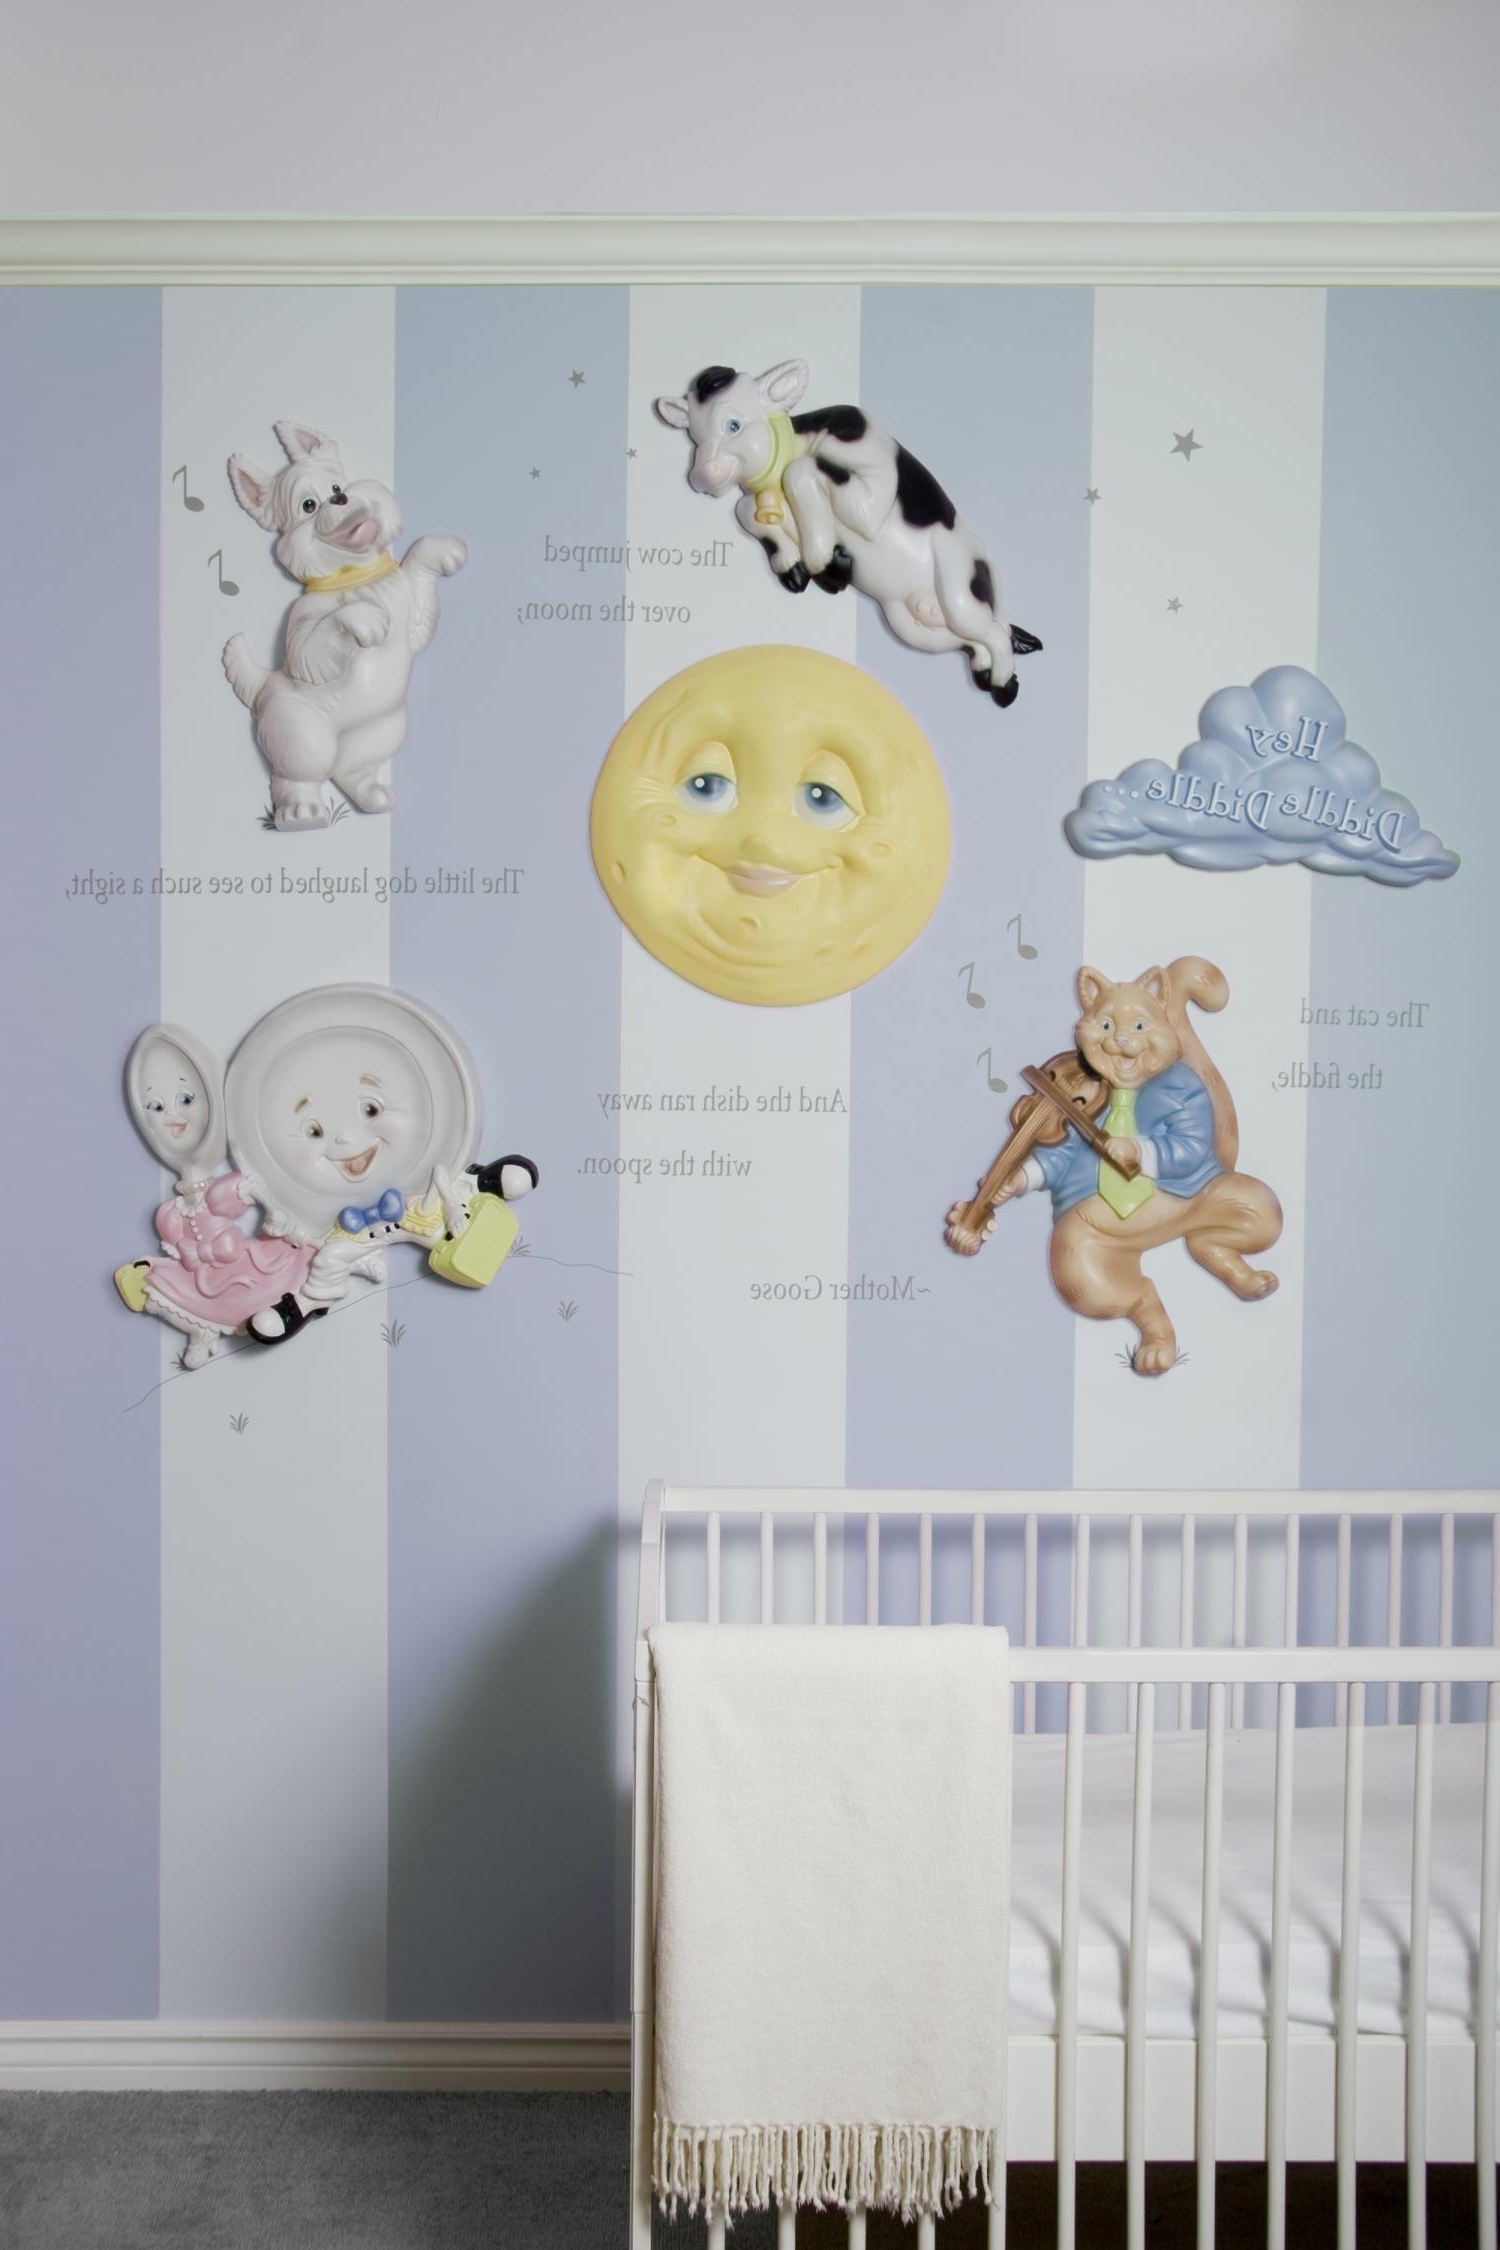 2017 3D Wall Art For Baby Nursery Within Mother Goose Nursery Rhymes 3D Wall Art Decorbeetling Design (View 1 of 15)